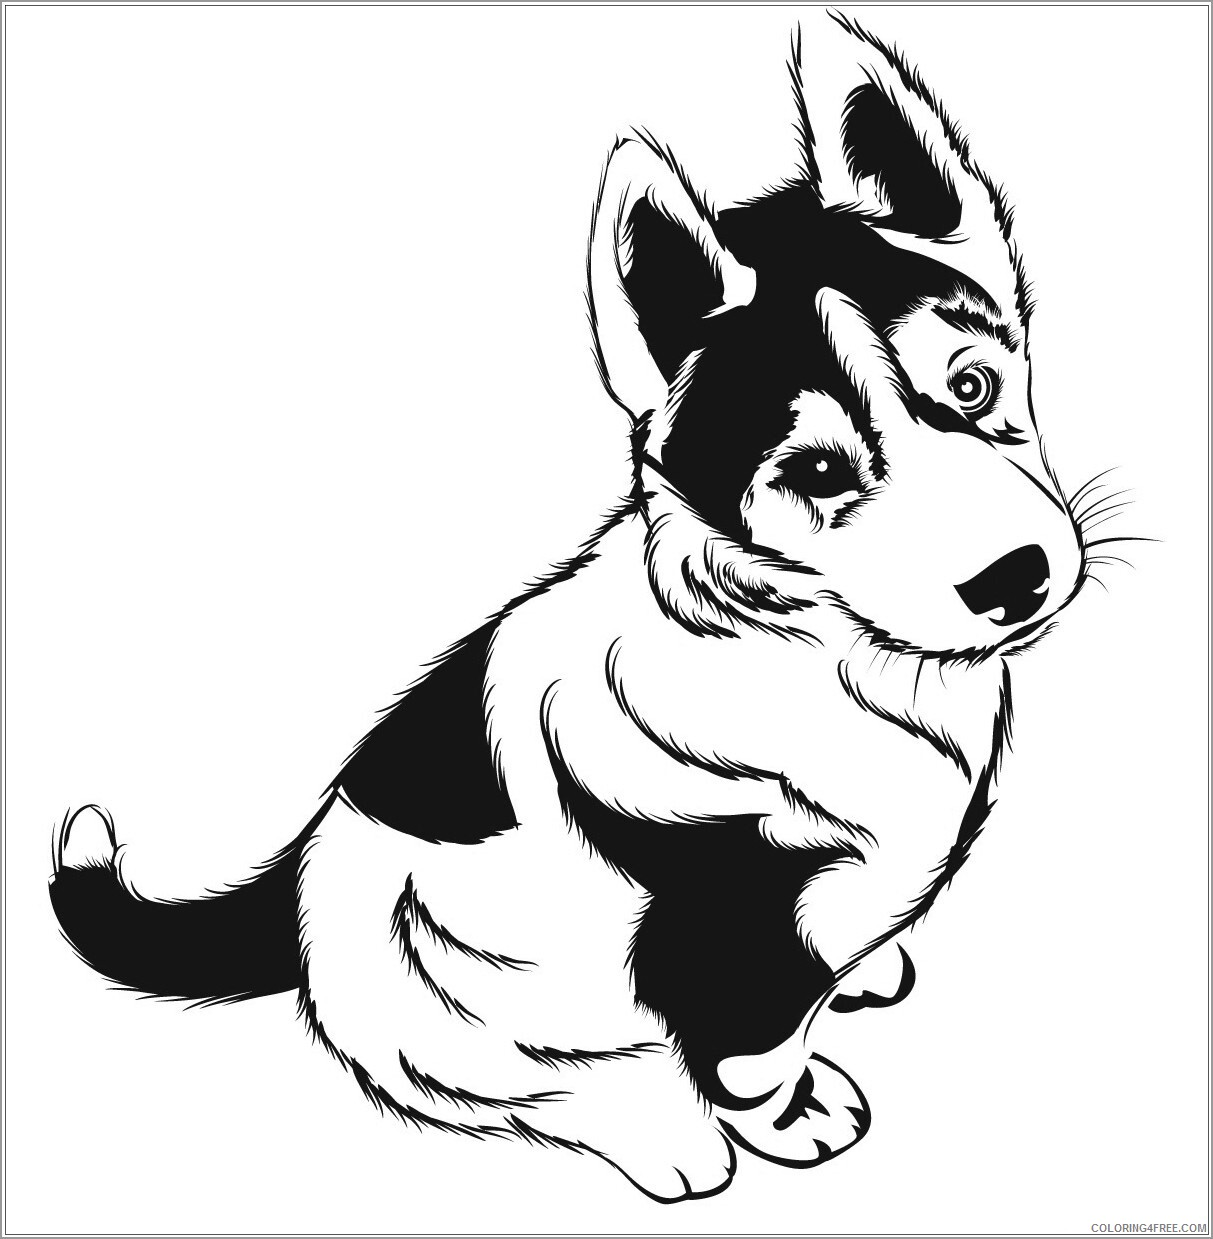 Husky Coloring Pages Animal Printable Sheets husky puppies 2021 2844 Coloring4free